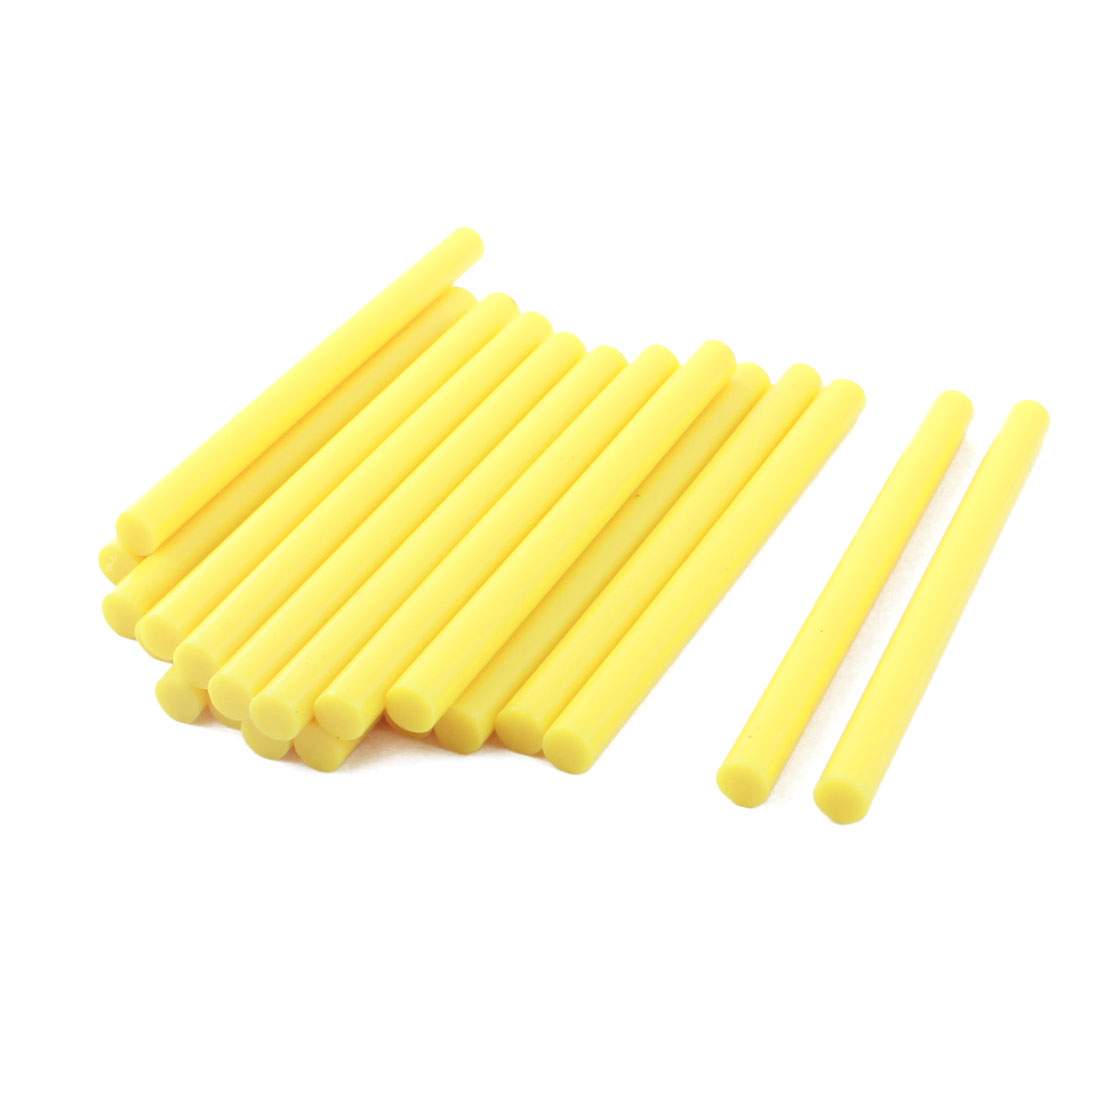 20 Pcs Yellow Hot Melt Glue Gun Adhesive Sticks 7mm x 100mm for Crafting Models